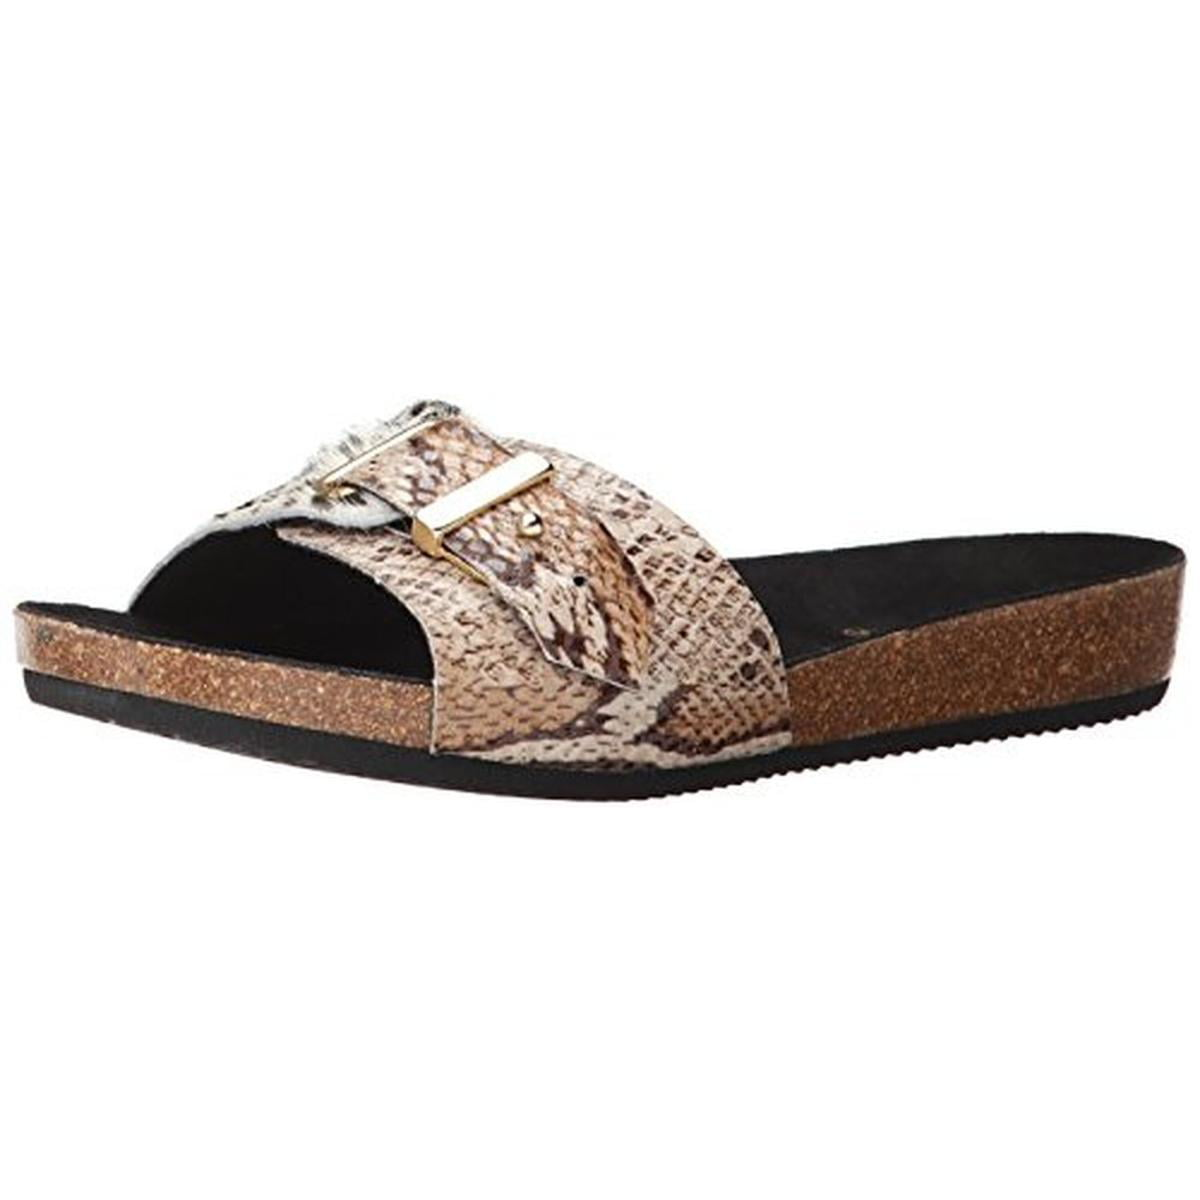 Ilse Jacobsen Womens Nomad Leather Animal Print Slide Sandals by Ilse Jacobsen